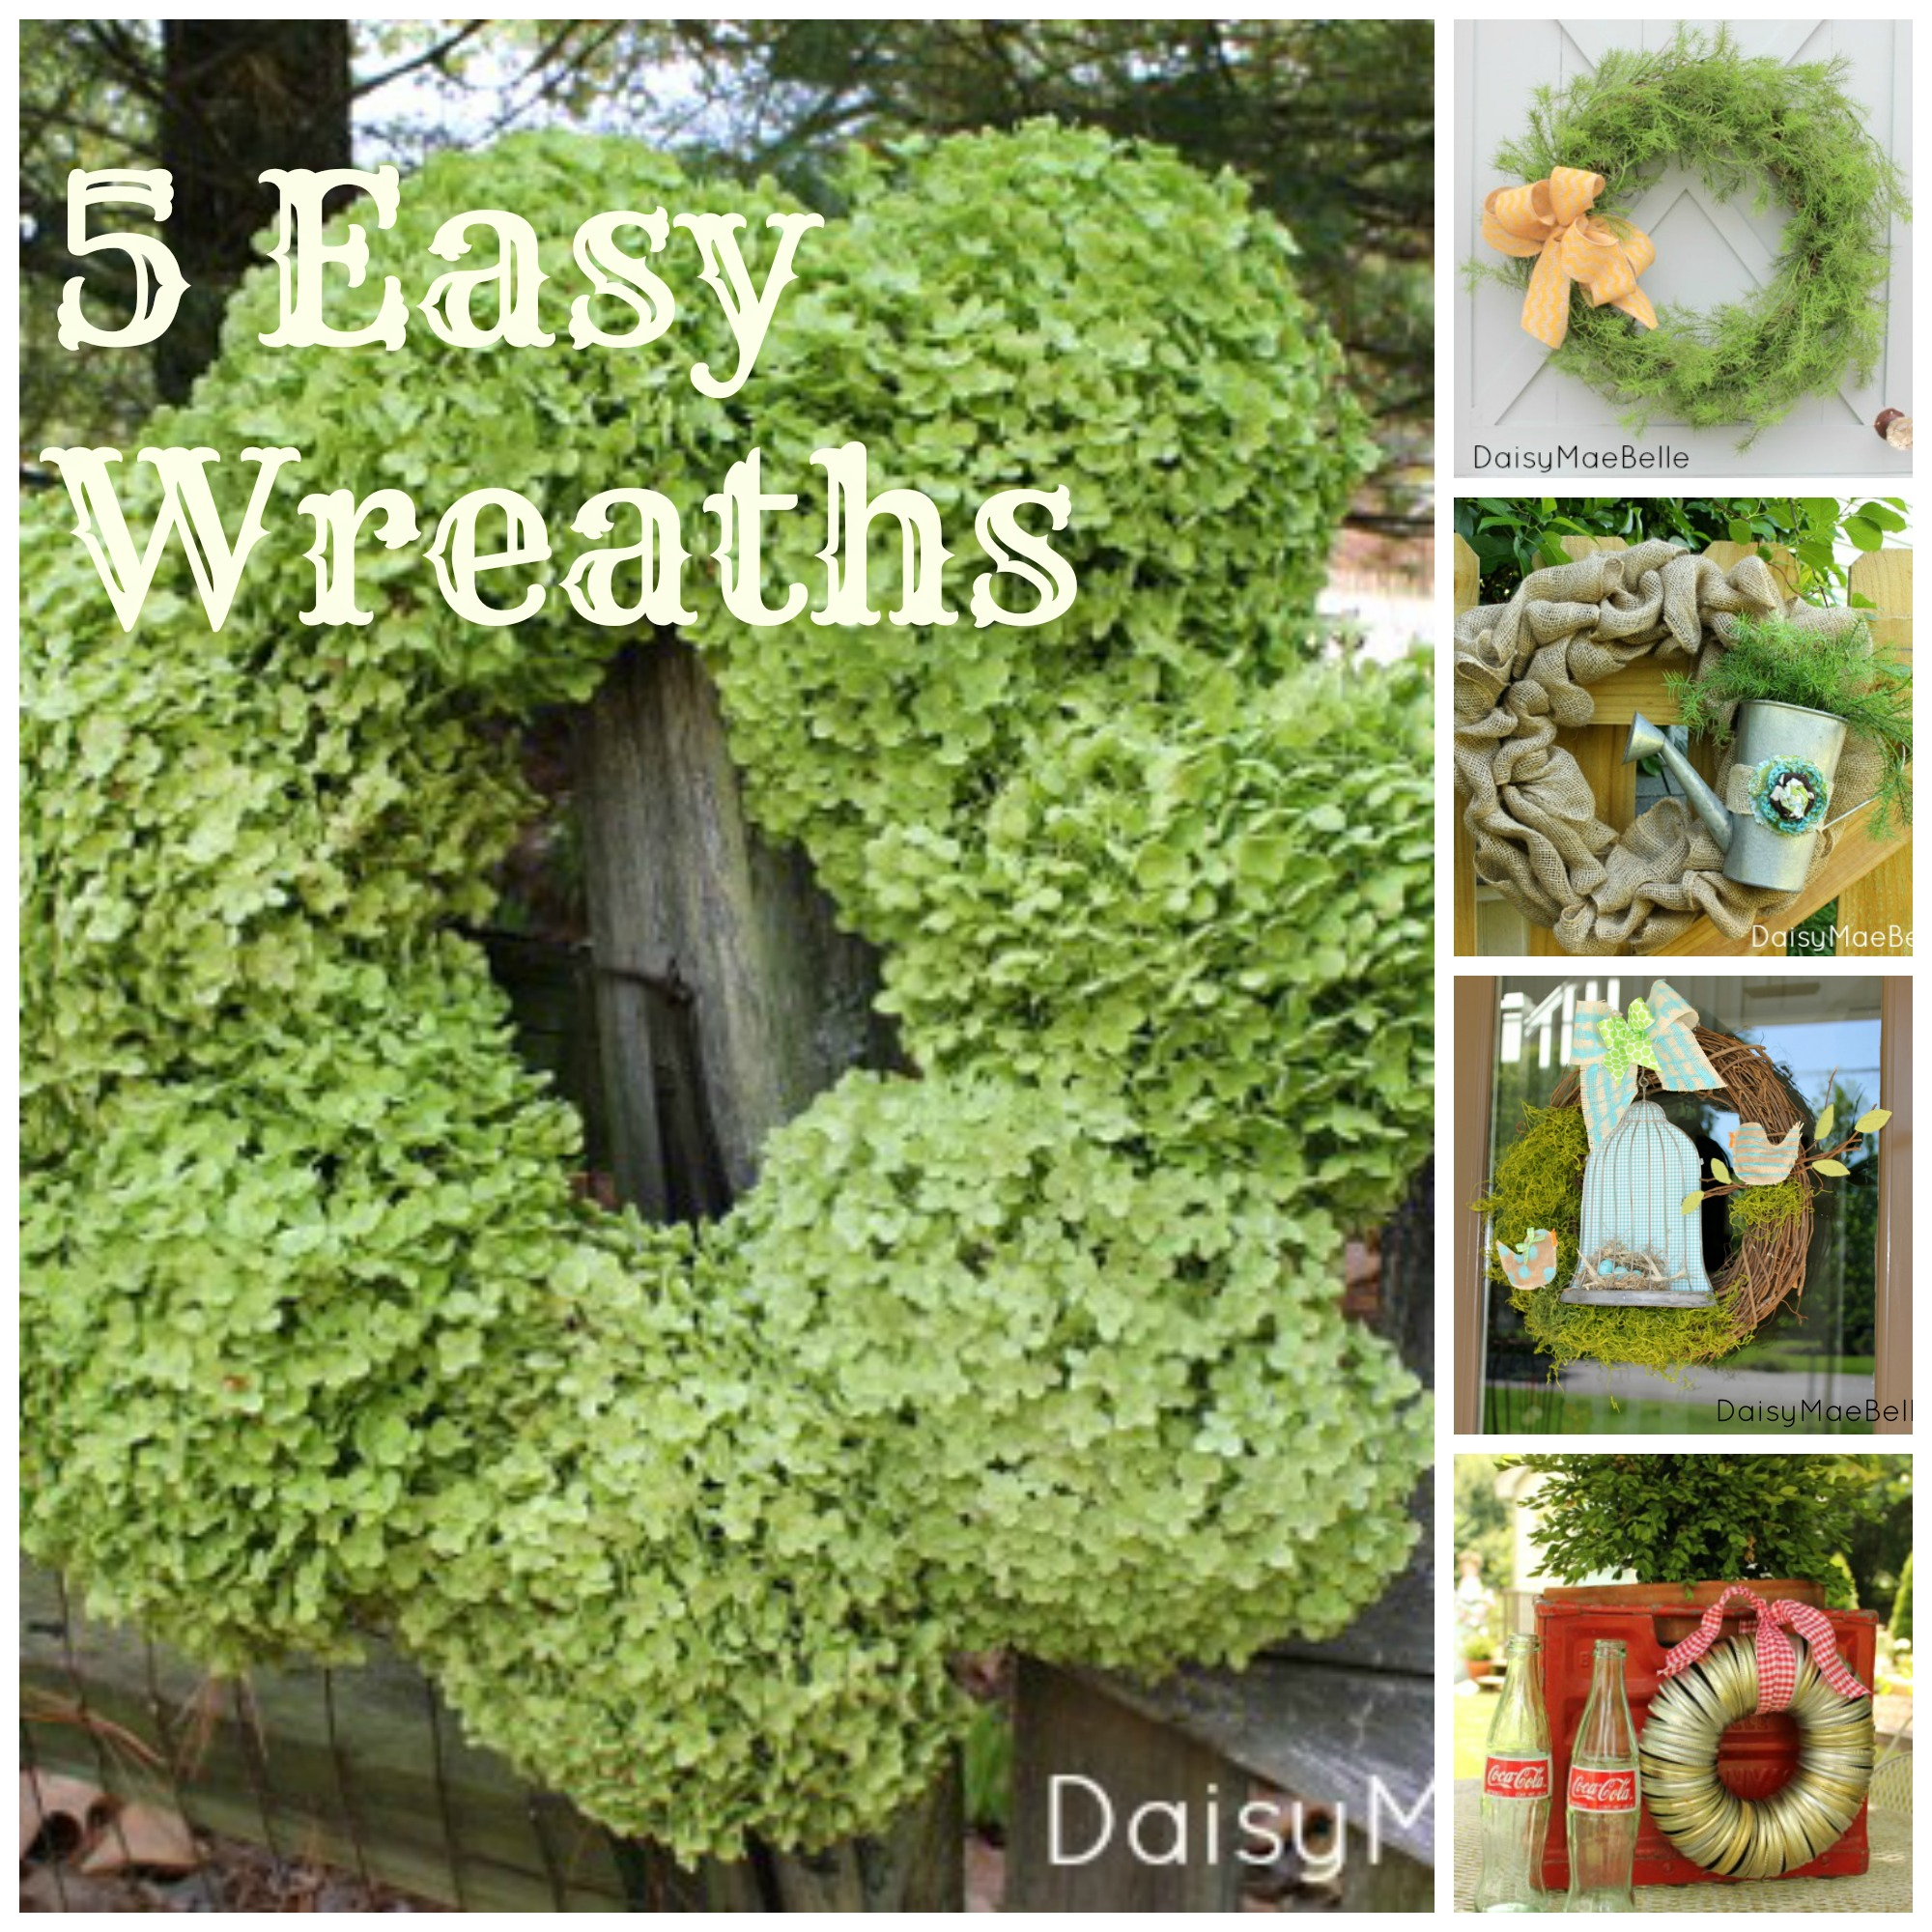 Charmant 5 Easy Wreath @ DaisyMaeBelle